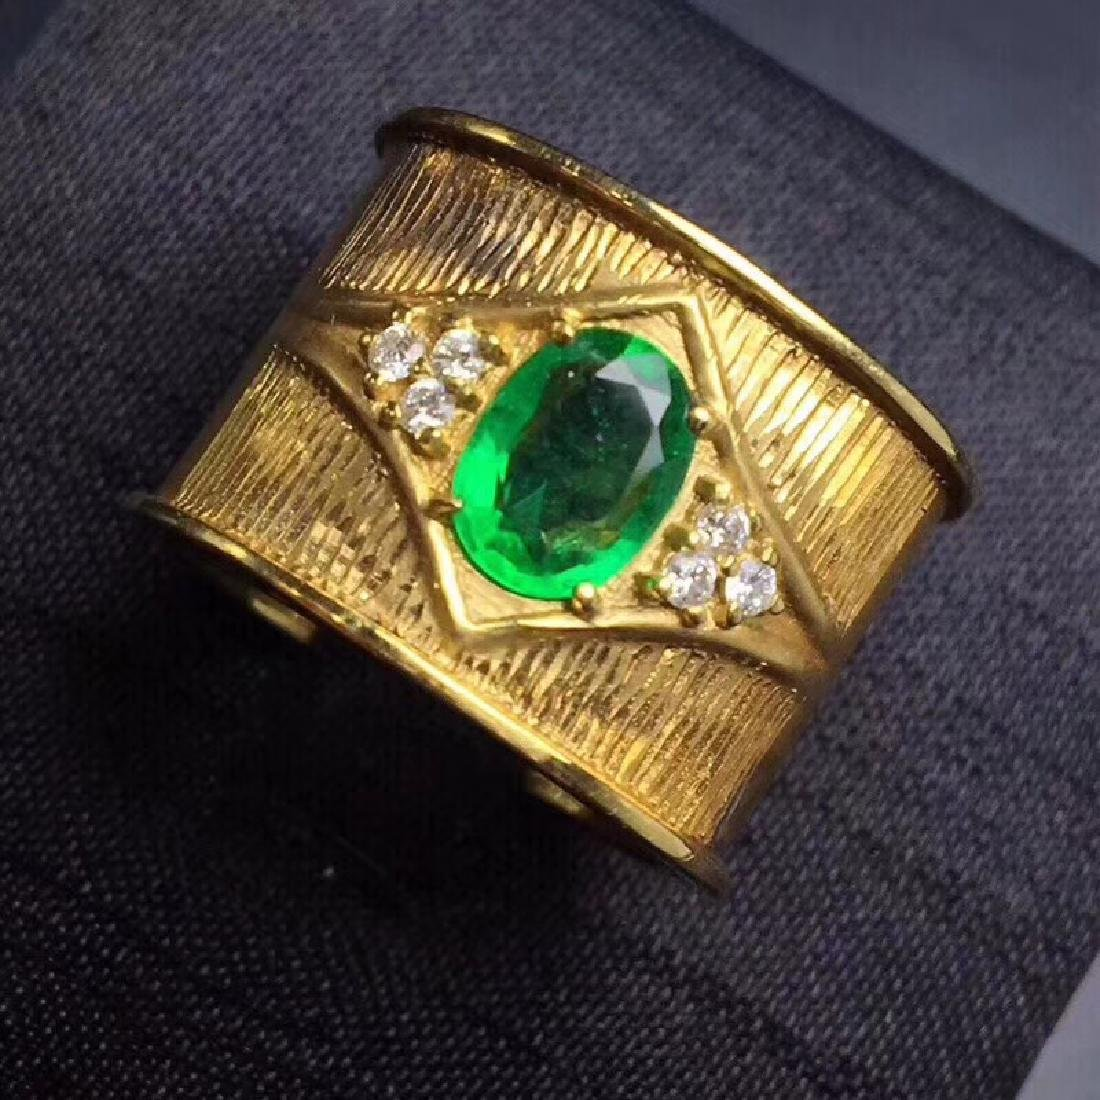 0.9 CTW Emerald & VS Diamond Ring 18K - 2